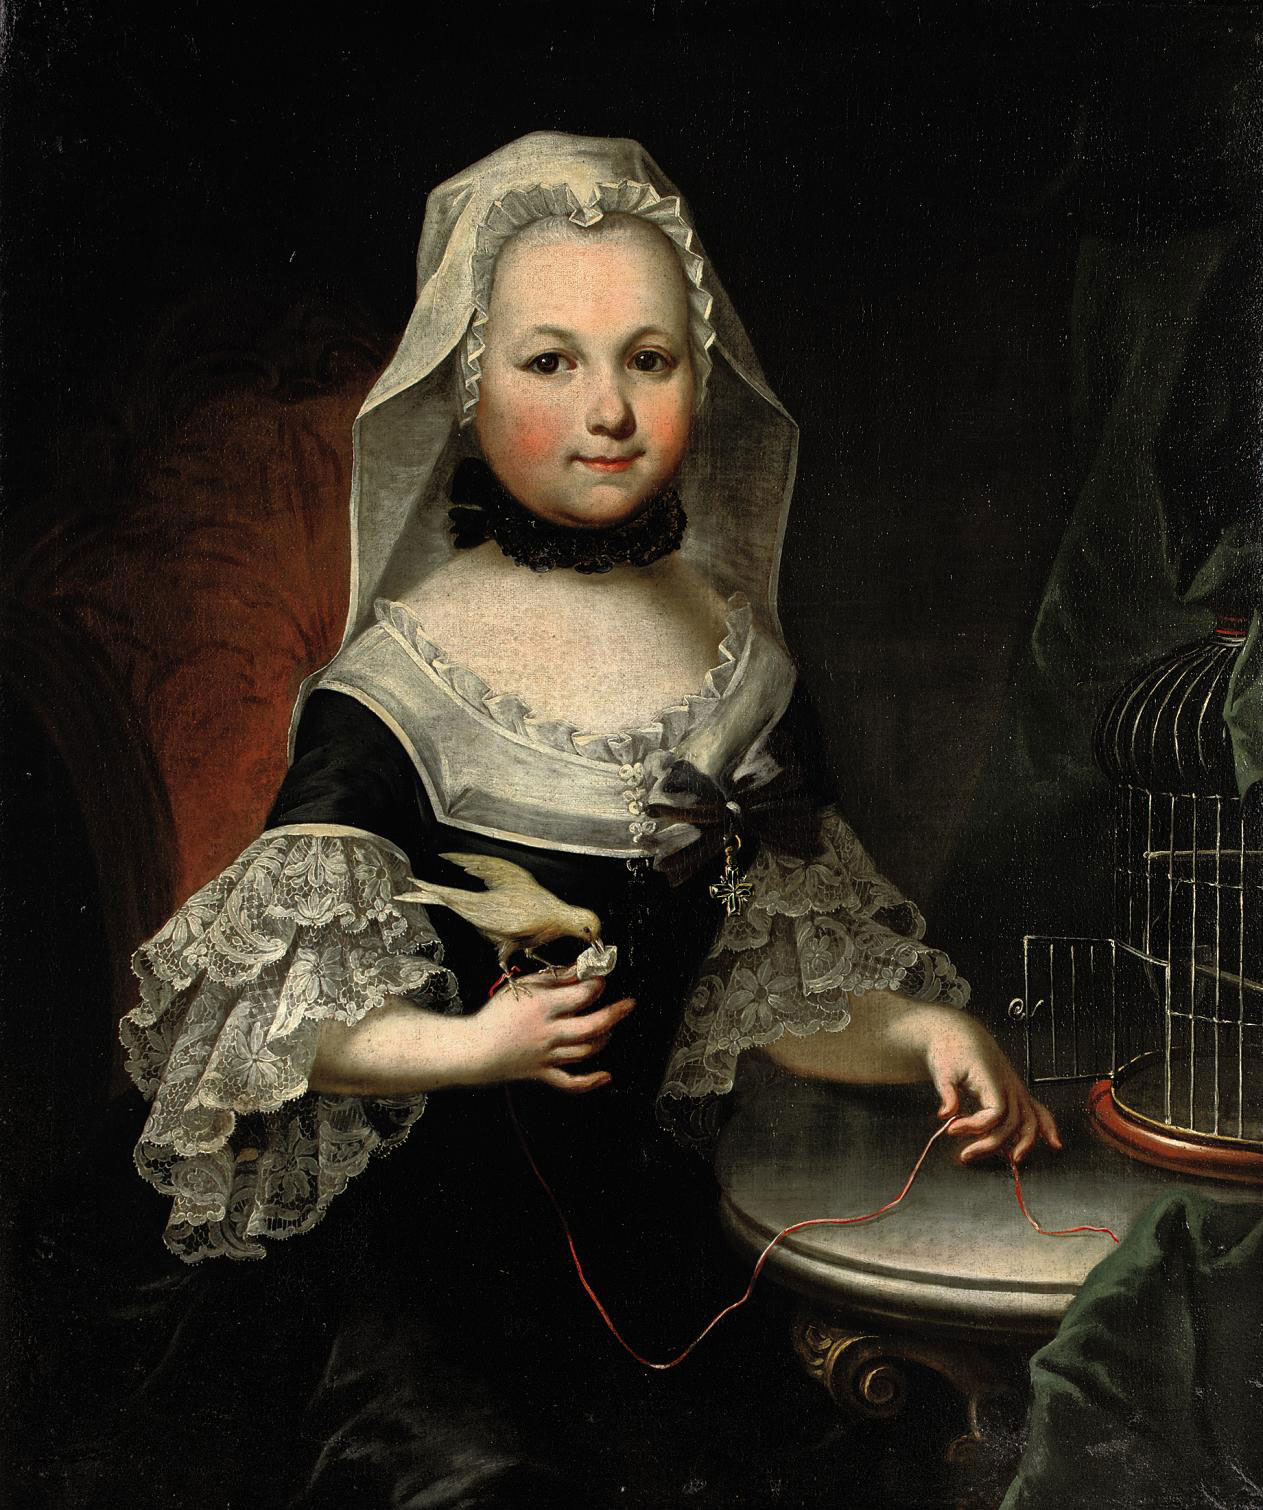 Portrait of Antonia, countess of Lamberg, three-quarter-length, in a black and white dress with lace cuffs, holding a bird by a string